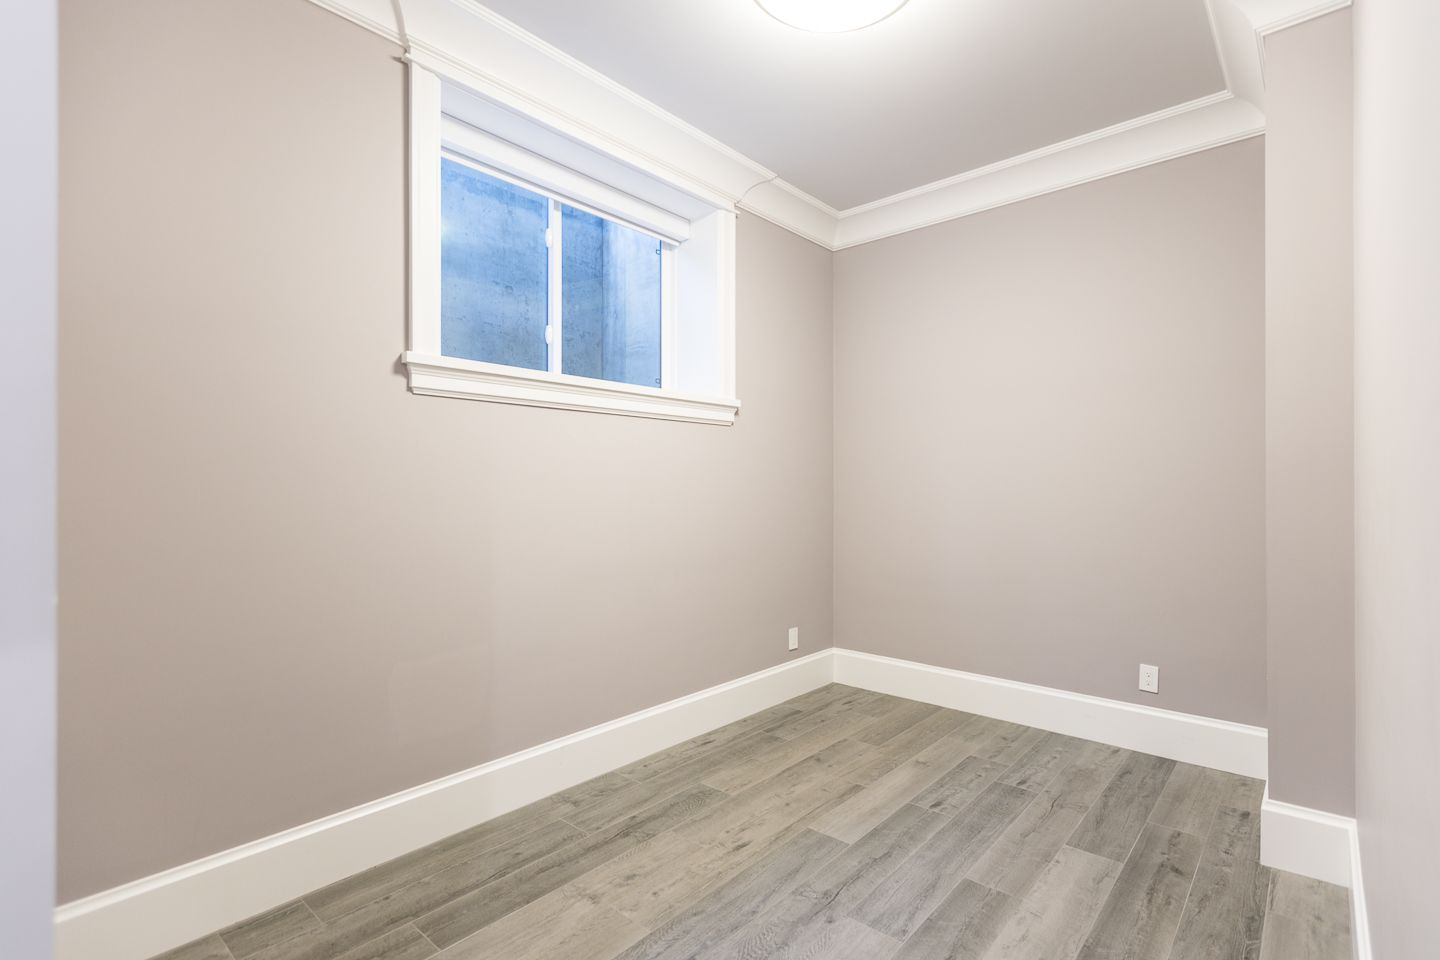 Photo 49: Photos: 1744 WEST 61ST AVE in VANCOUVER: South Granville House for sale (Vancouver West)  : MLS®# R2546980